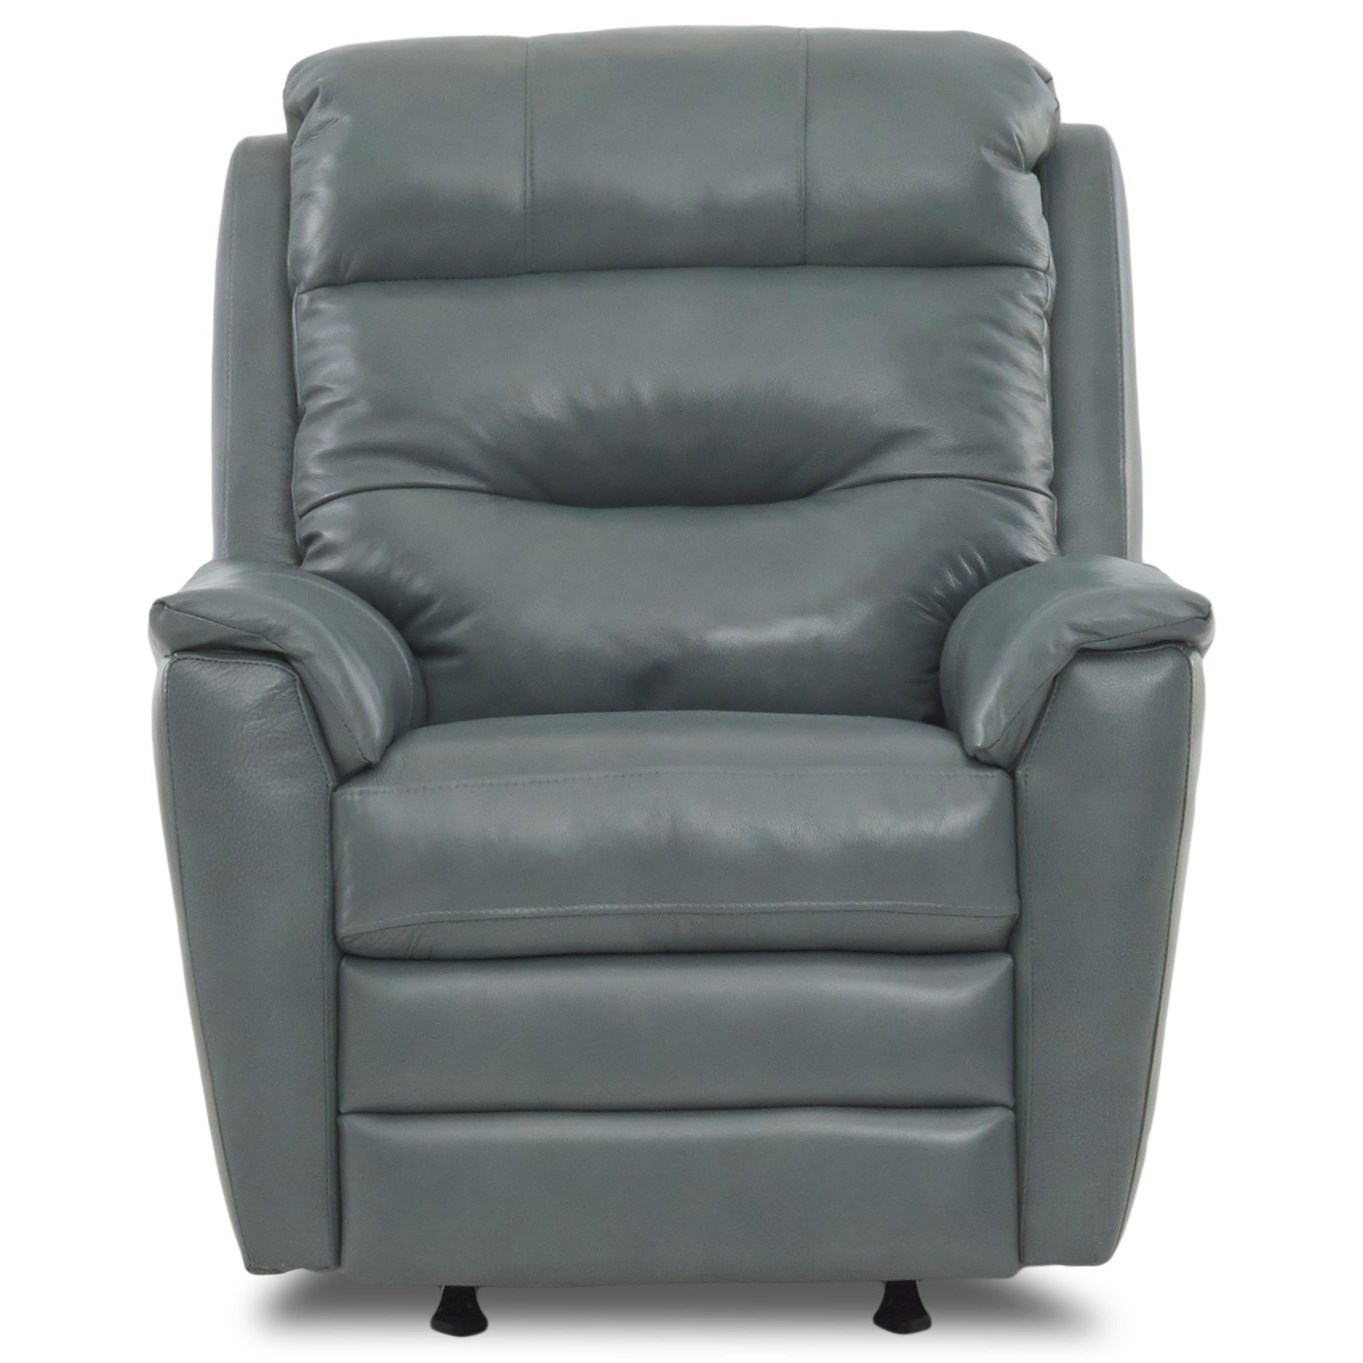 Nola Power Recliner with Power Headrest/Lumbar by Klaussner at Johnny Janosik